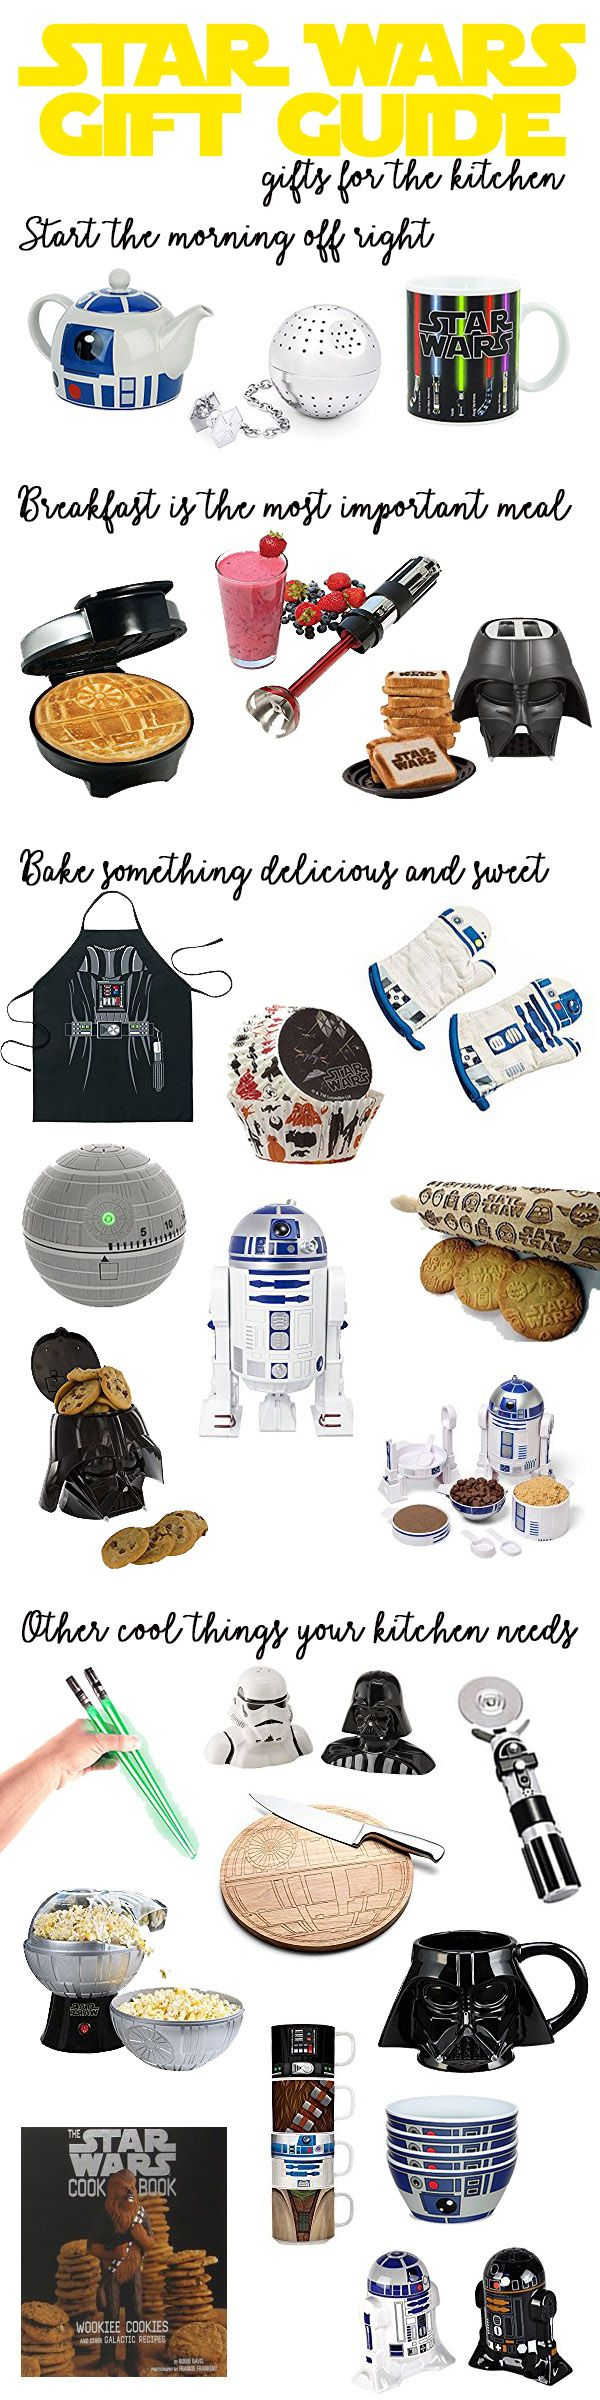 24 Star Wars Gifts that your favorite Chef needs | Star wars gifts ...